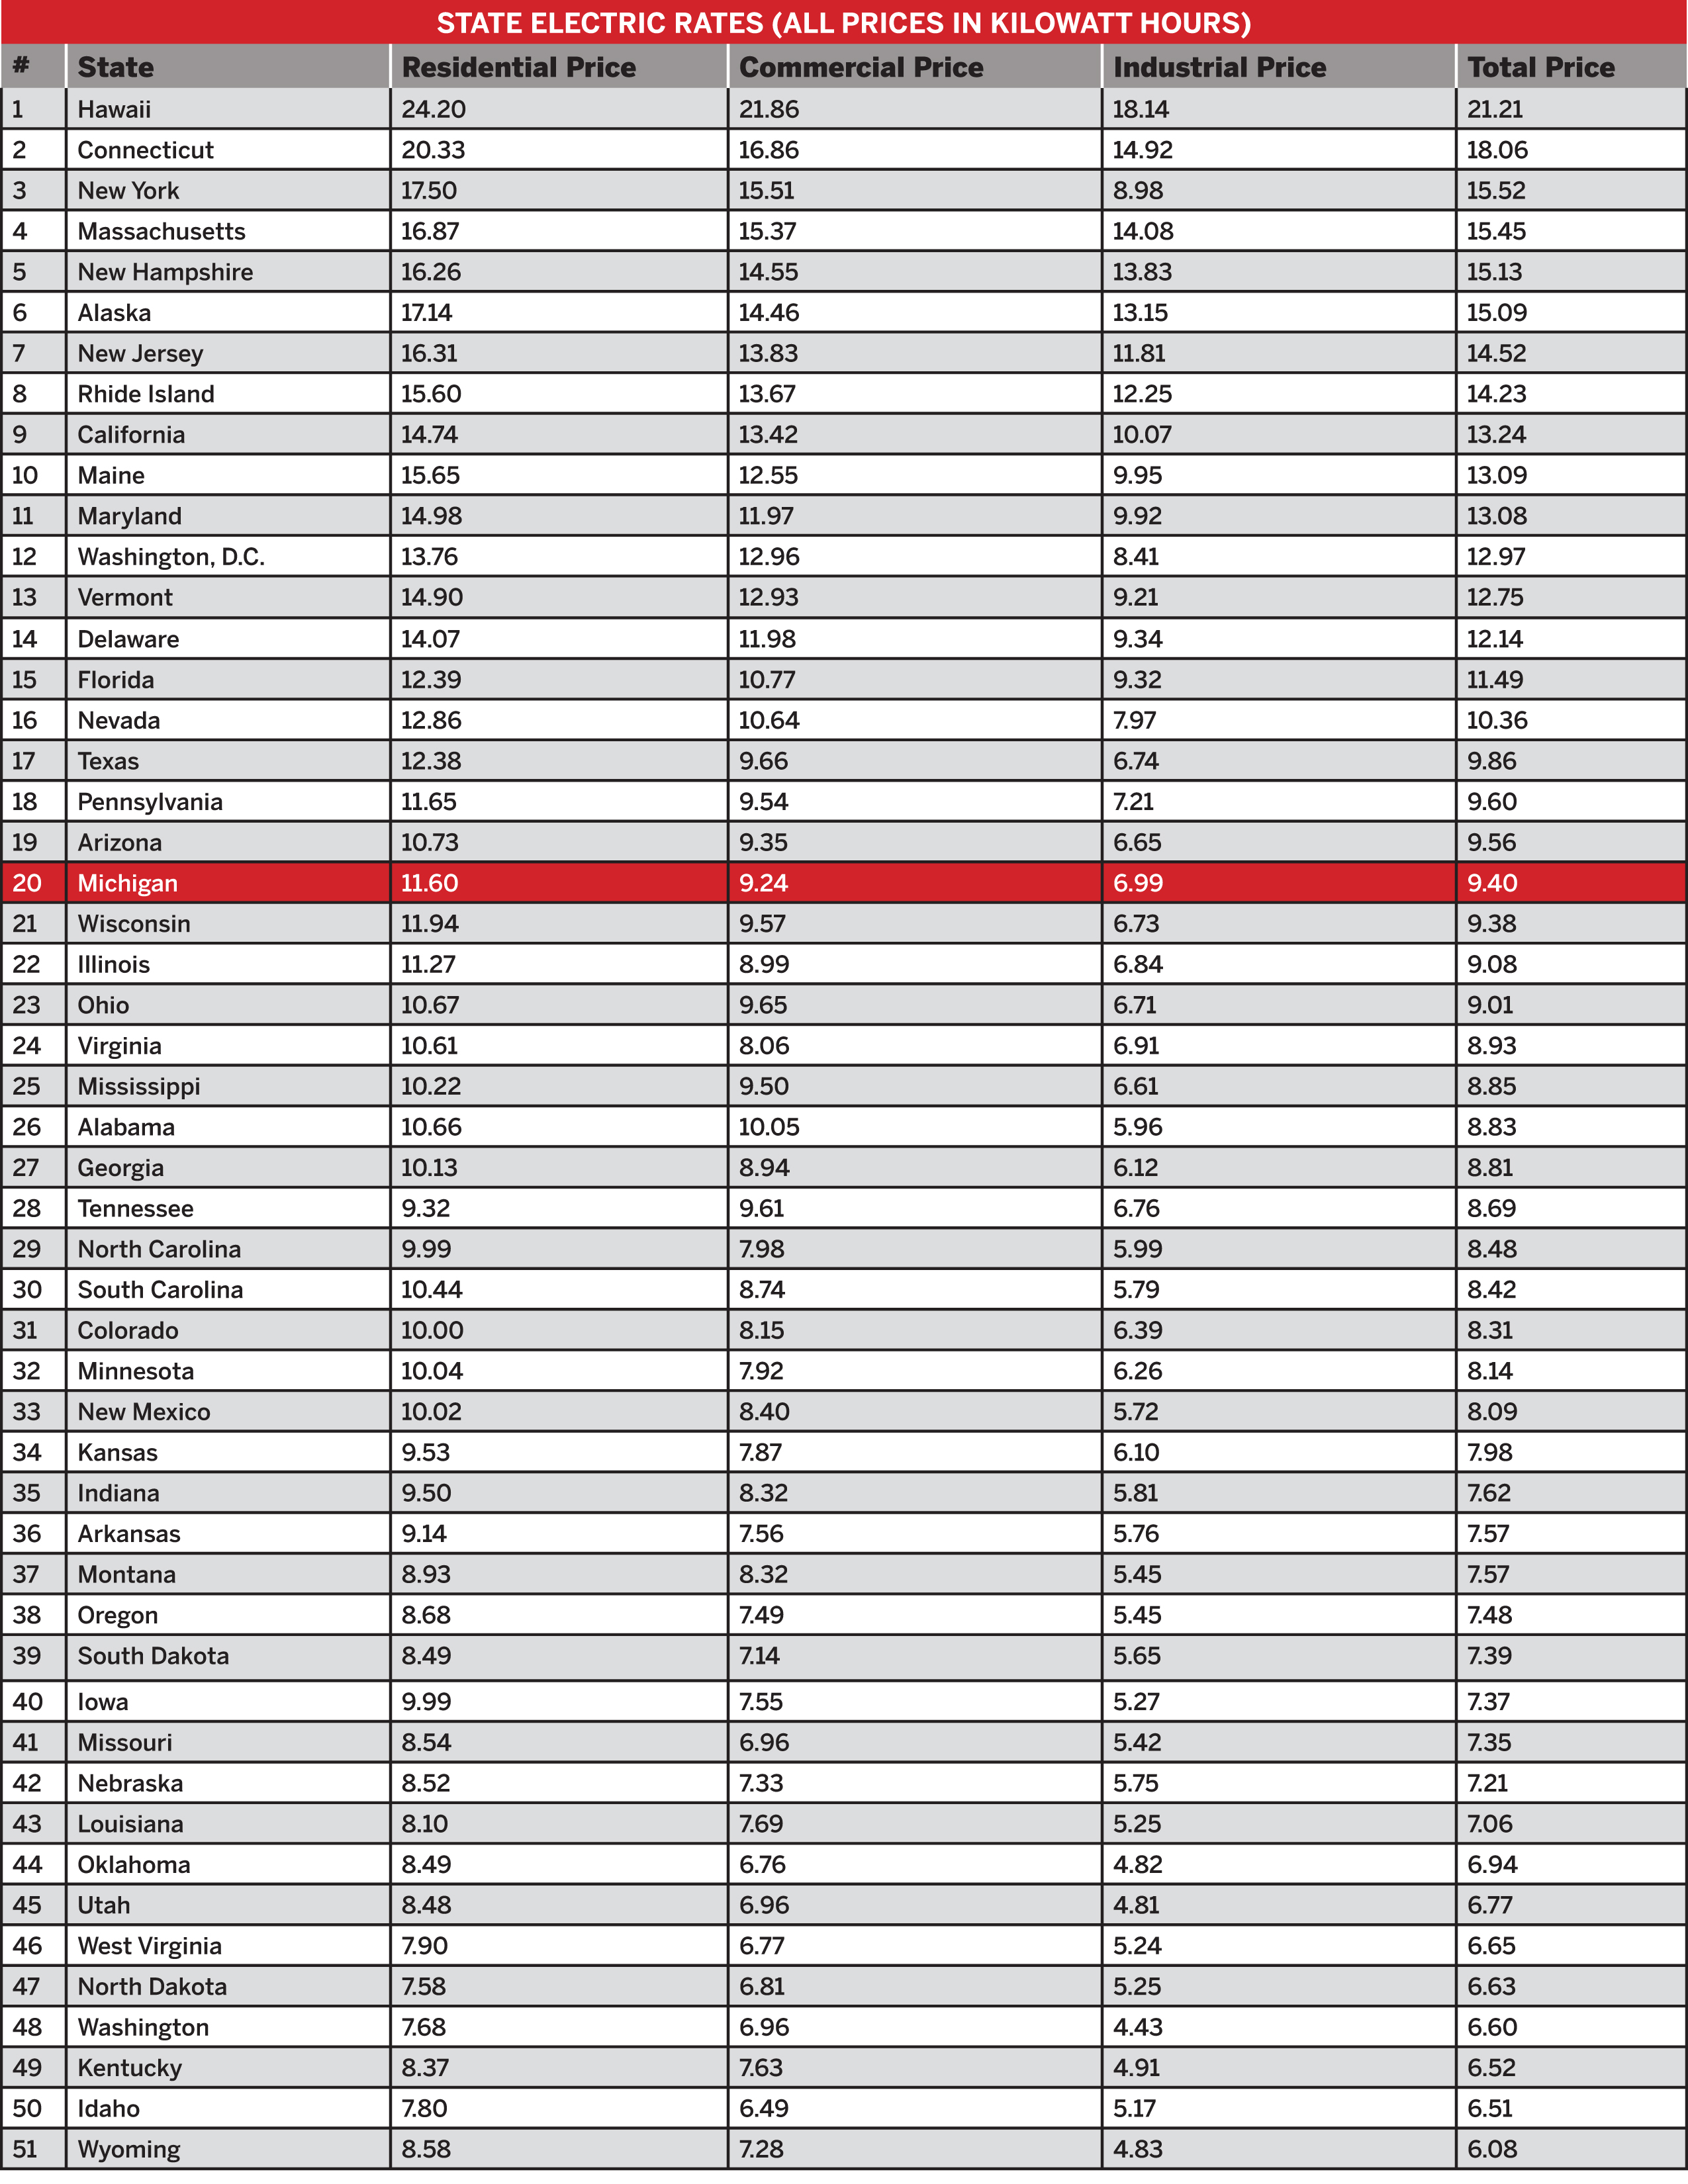 State Electric Rates